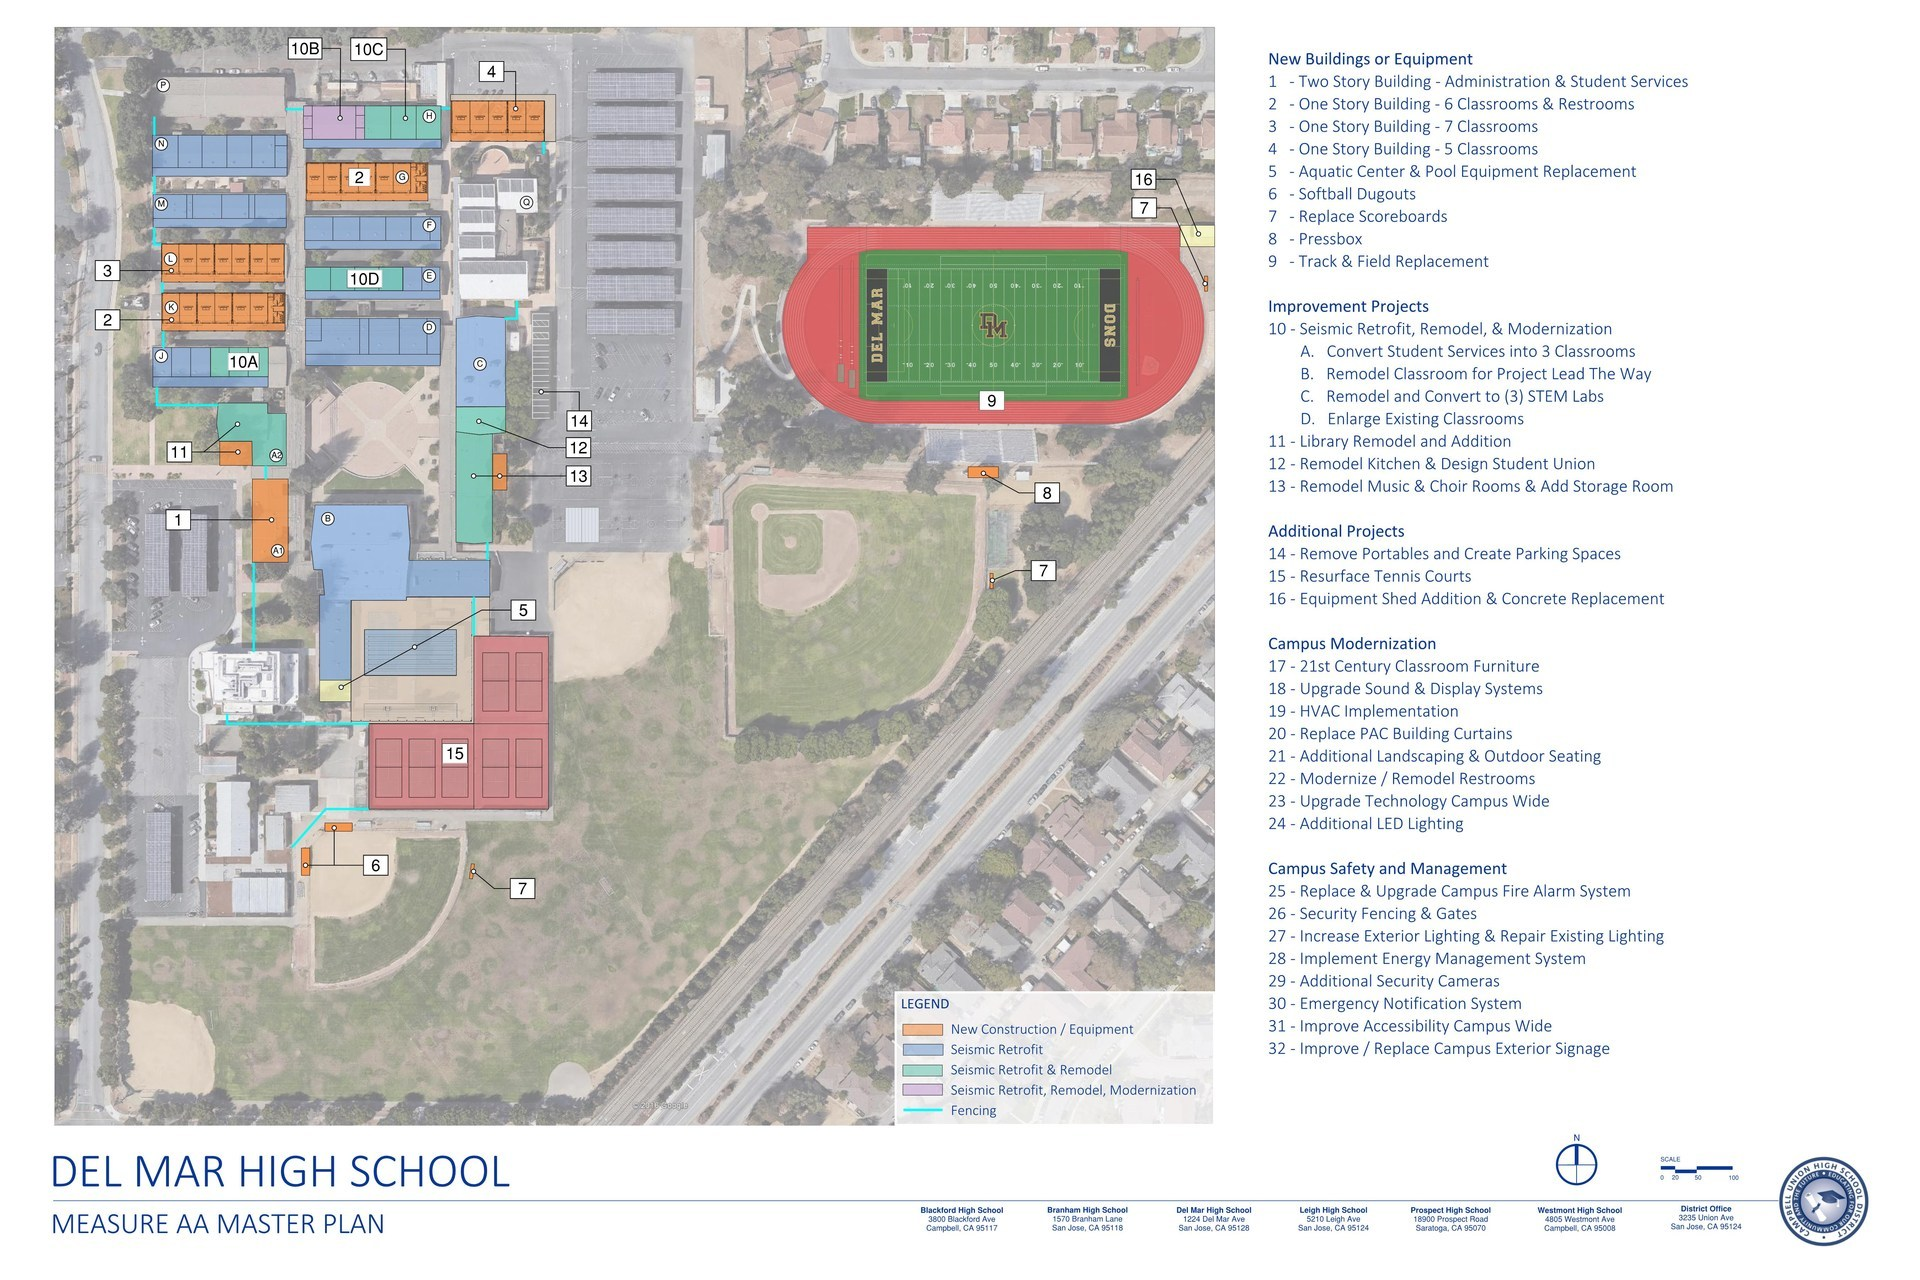 Image of Del Mar High School Measure AA Master Plan